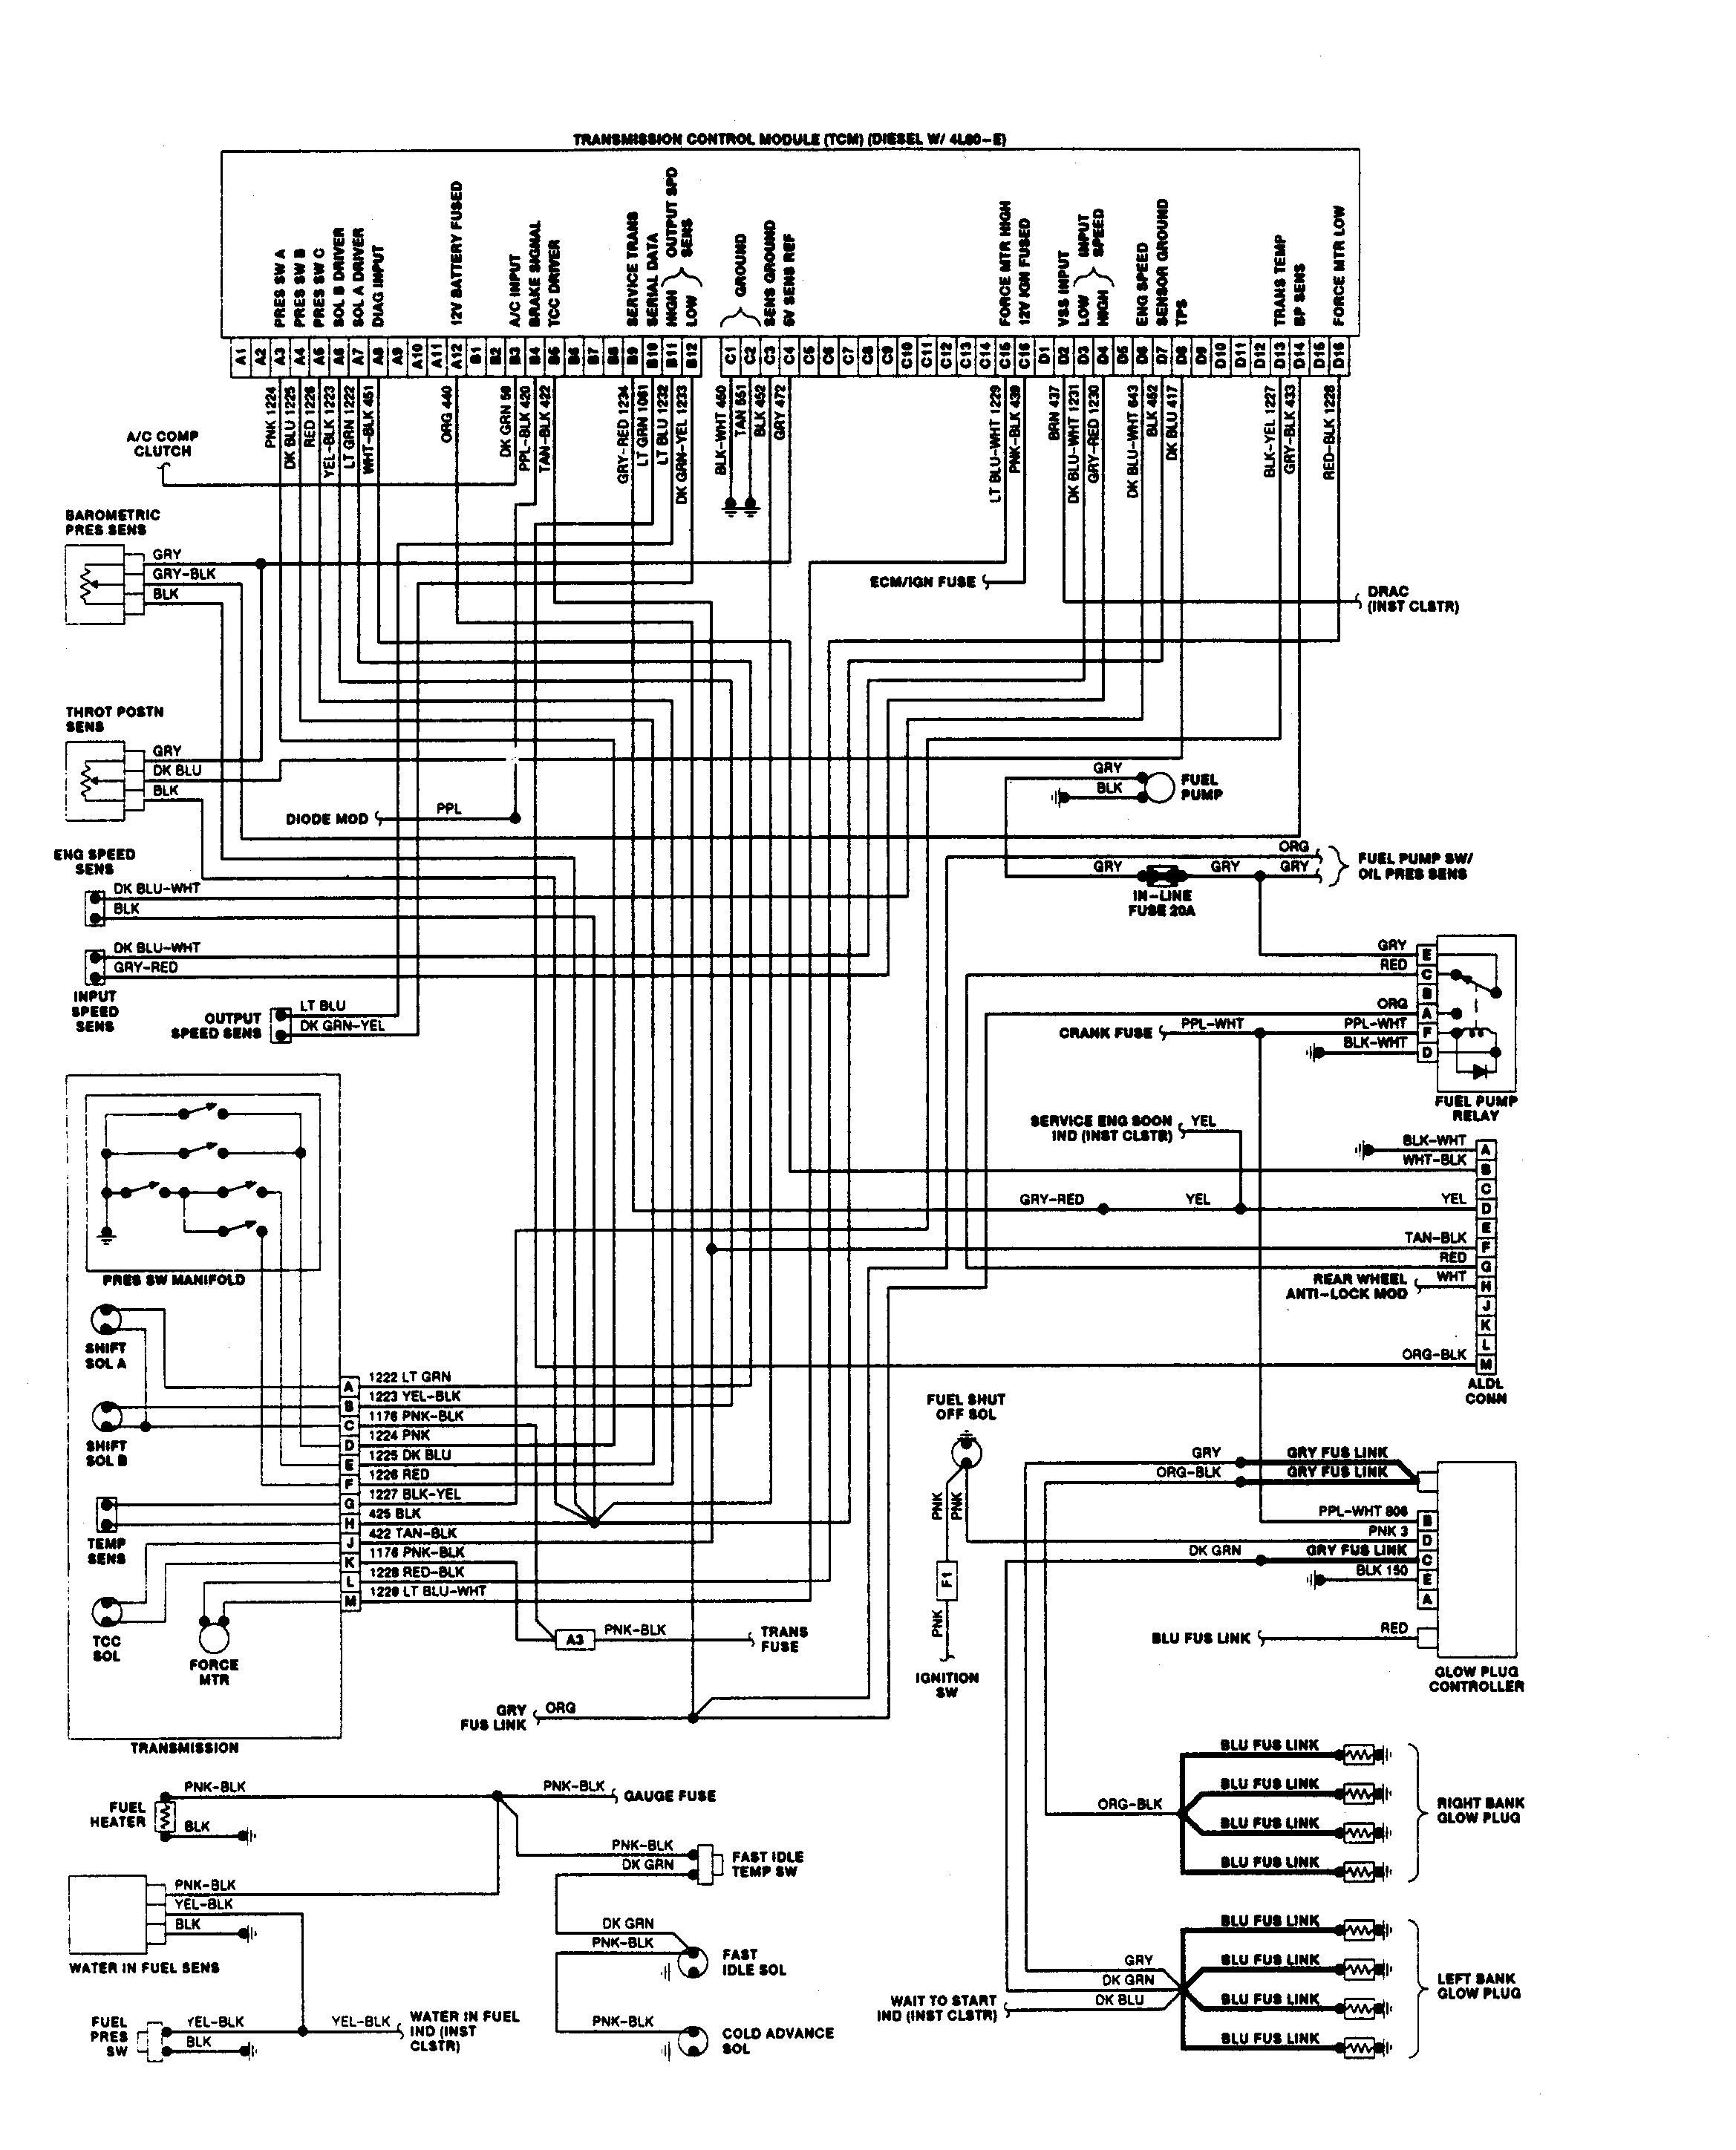 Chevrolet P30 Wiring Diagram - Wiring Diagram Rows on gmc motorhome wiring diagram, ford motorhome wiring diagram, dodge motorhome wiring diagram, monaco motorhome wiring diagram, chevy astro van wiring diagram, fleetwood bounder motorhome wiring diagram,